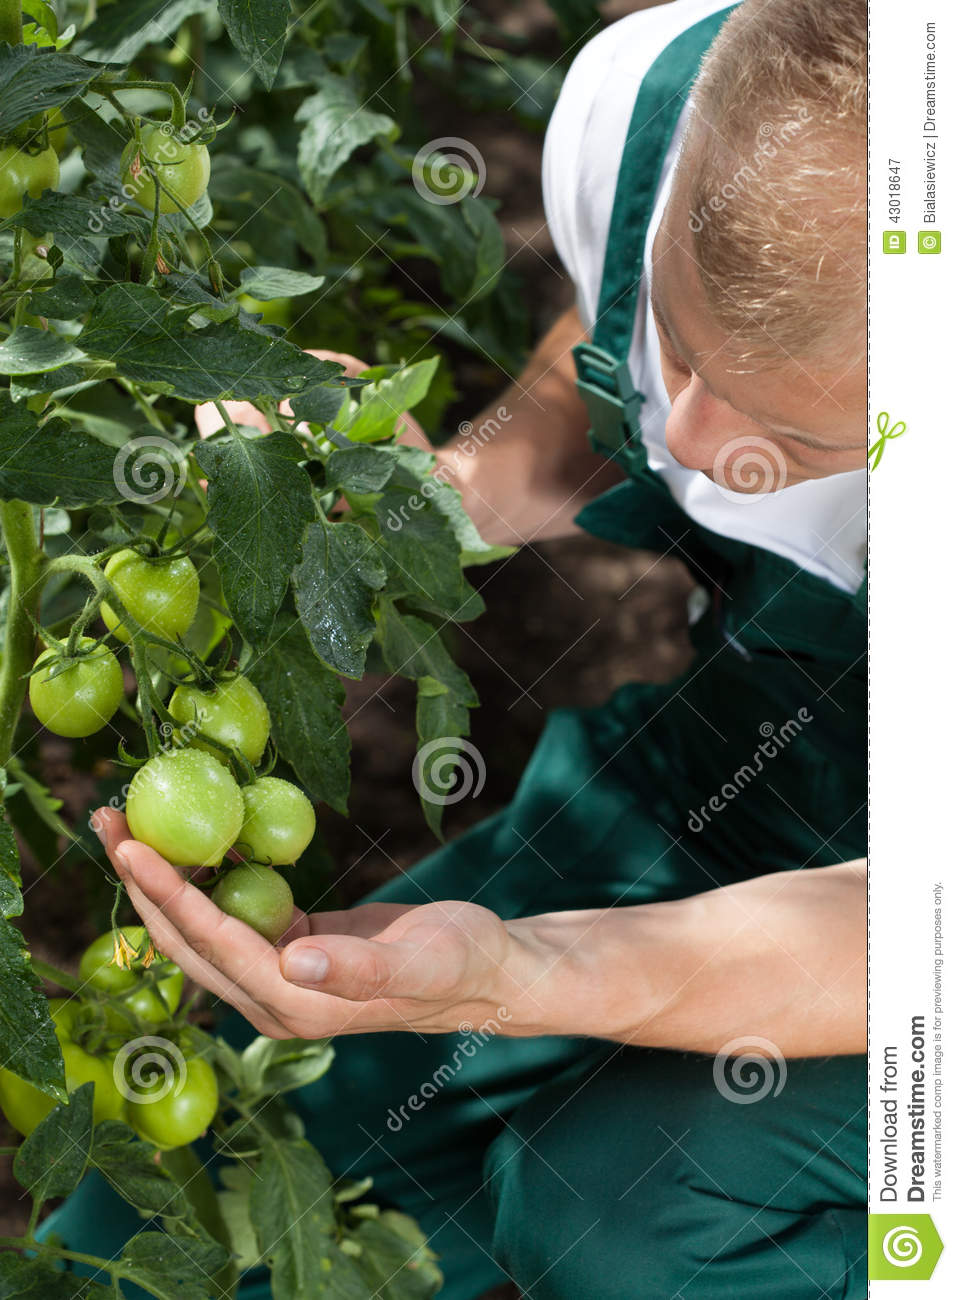 Gardener caring about tomatoes